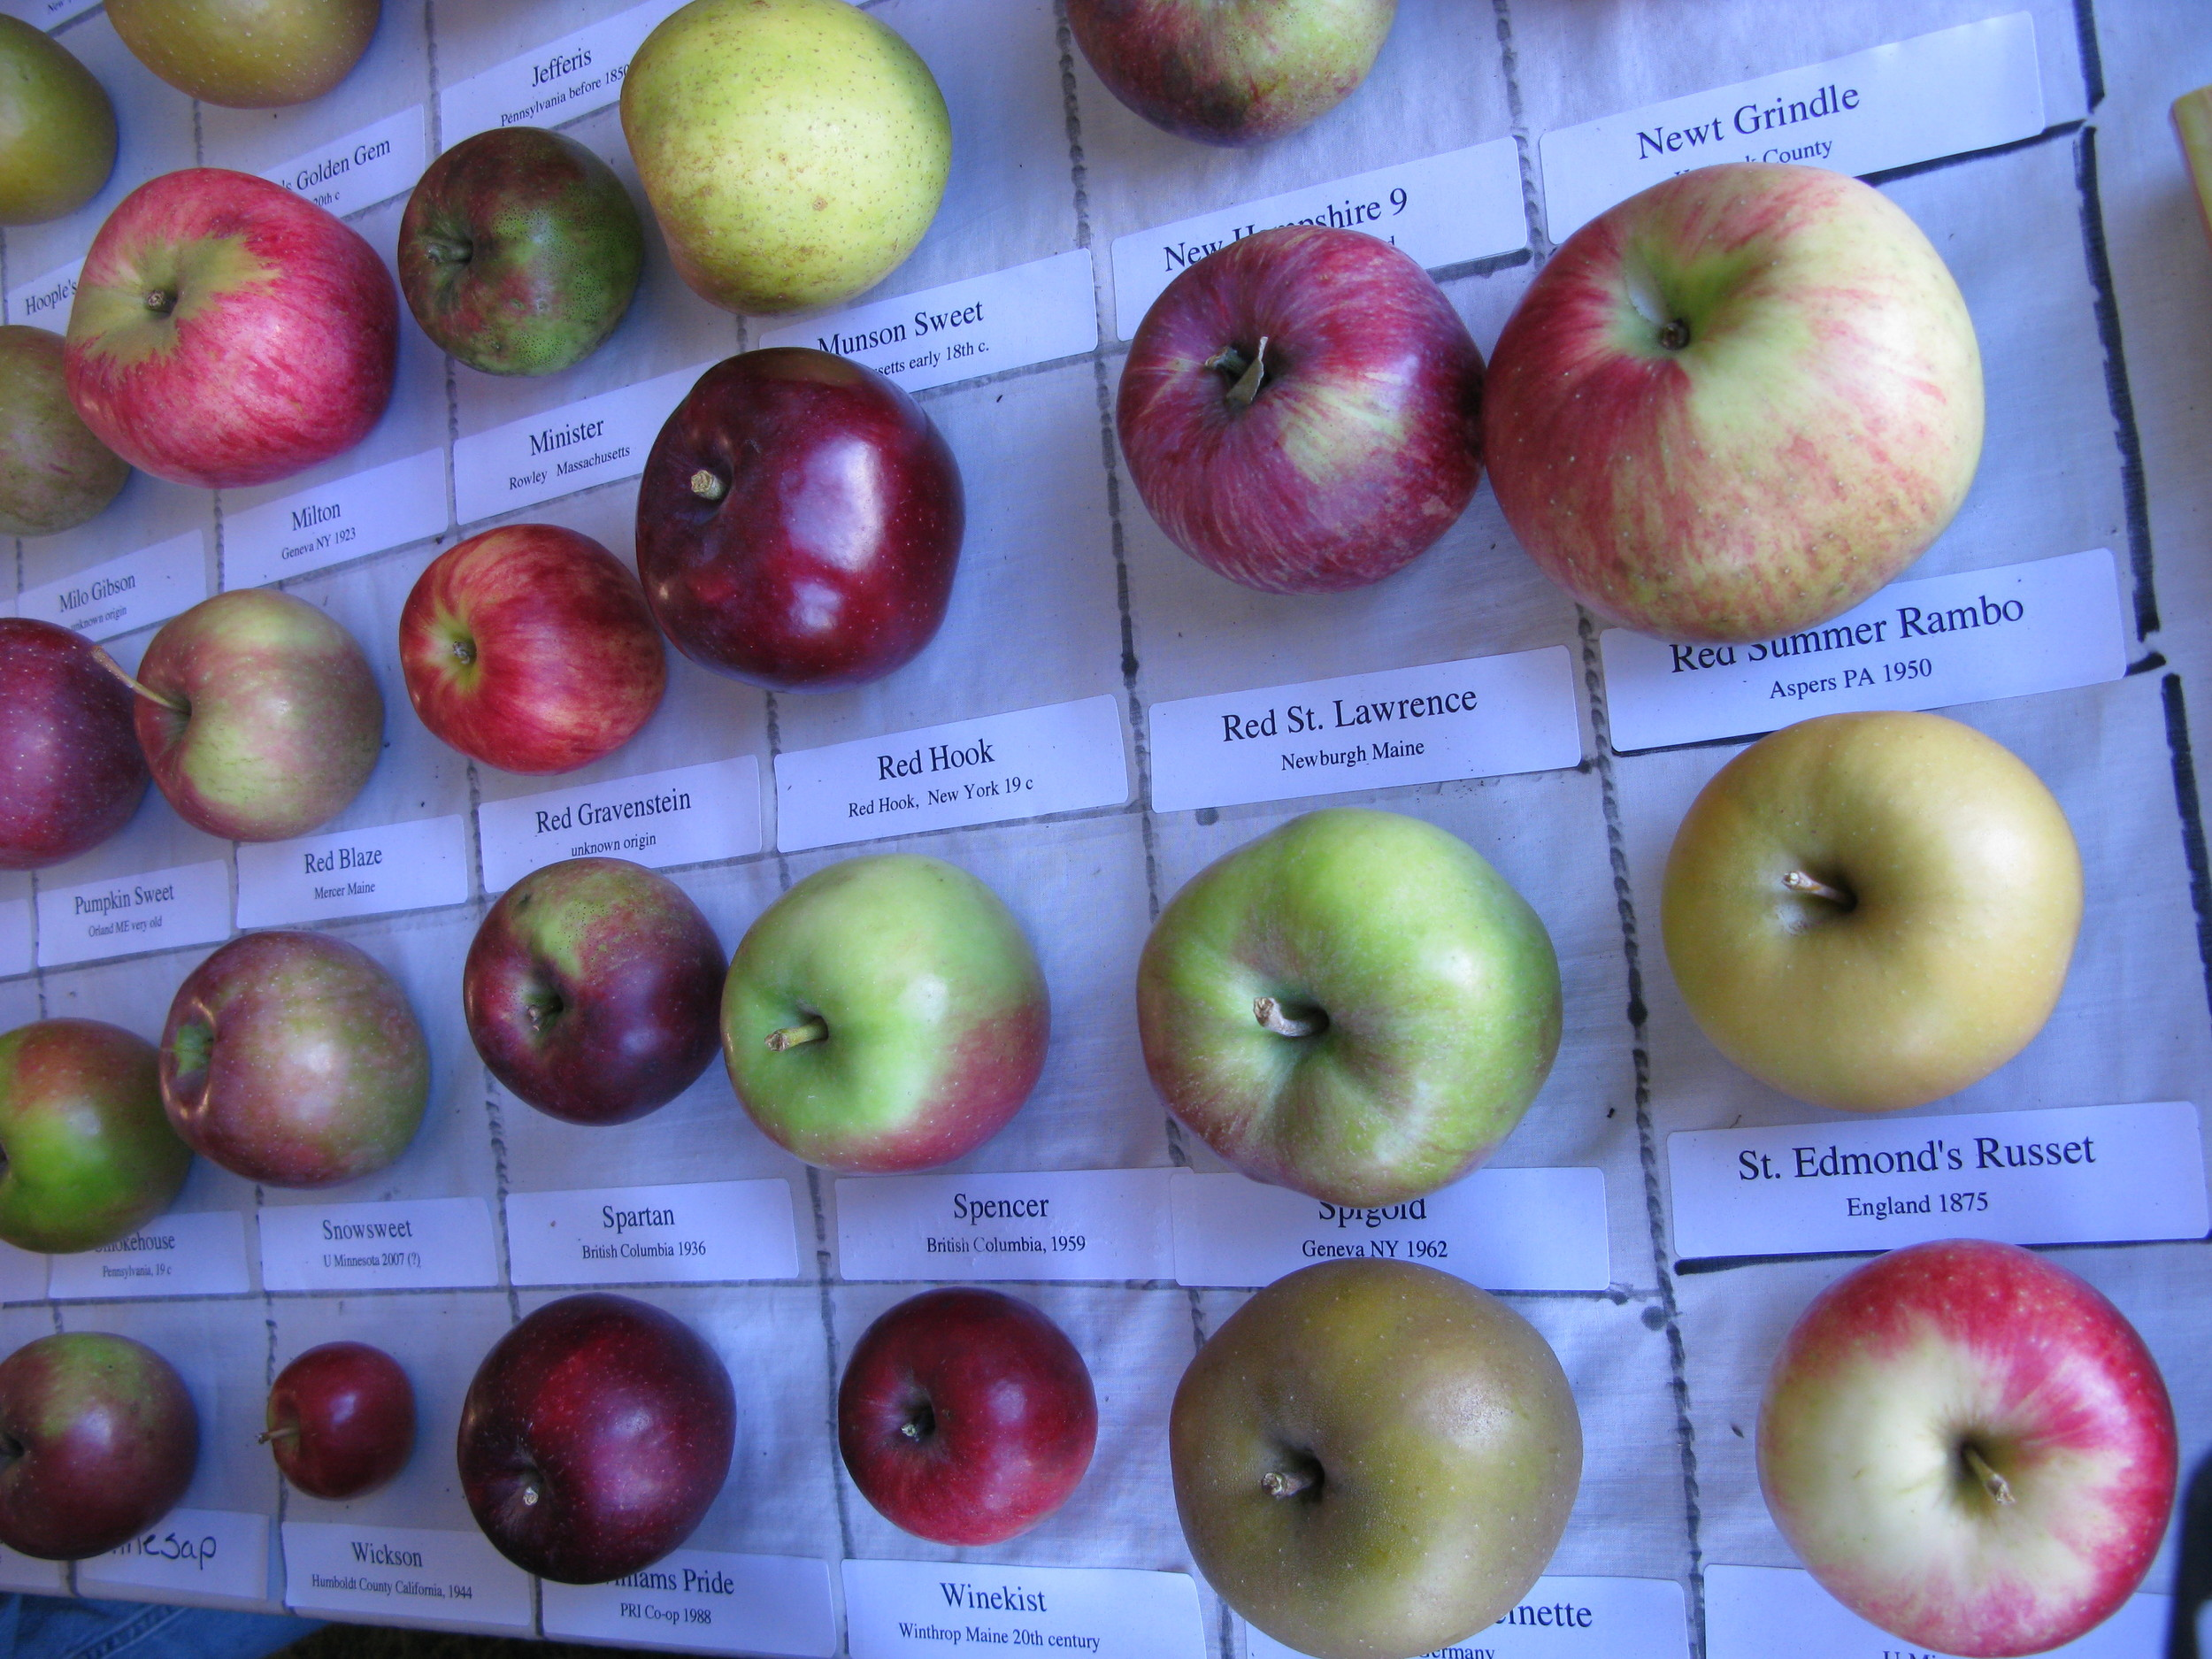 The fair is known for its display of rare heritage apples–believe it or not, Maine used to have 10,000 varieties.